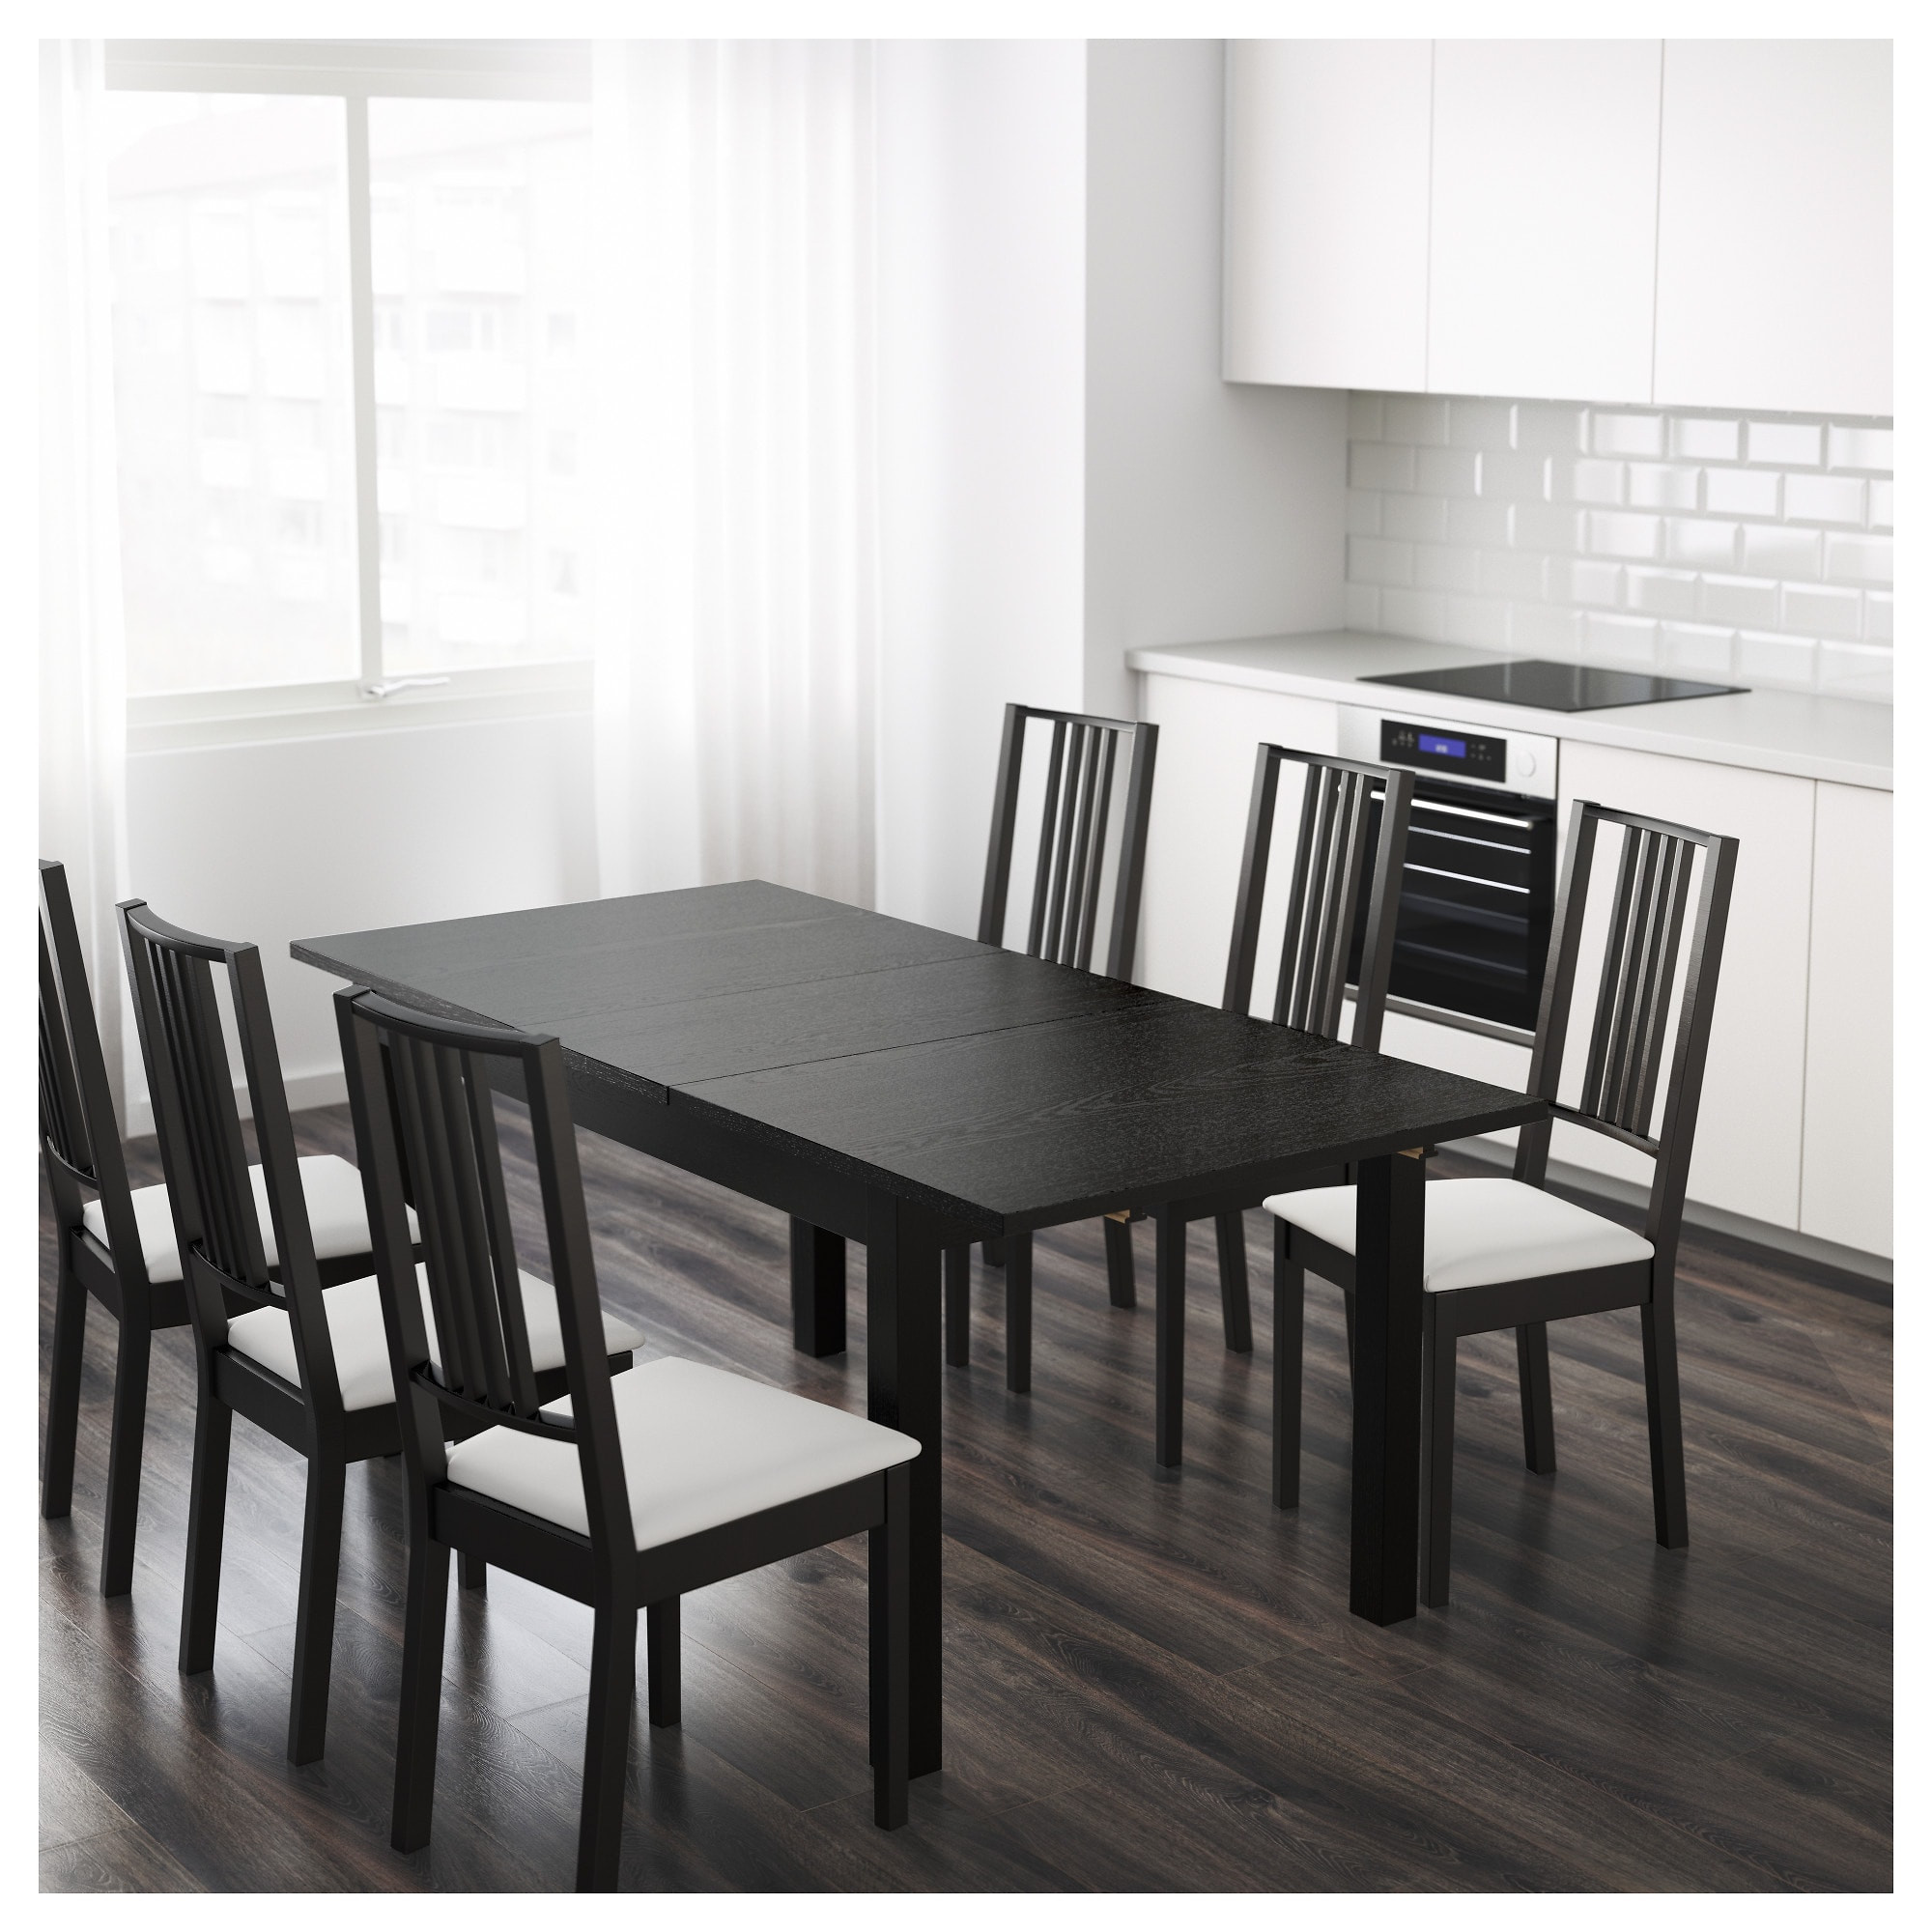 Best ideas about Ikea Dining Table . Save or Pin BJURSTA Extendable table Brown black 140 180 220 x 84 cm Now.